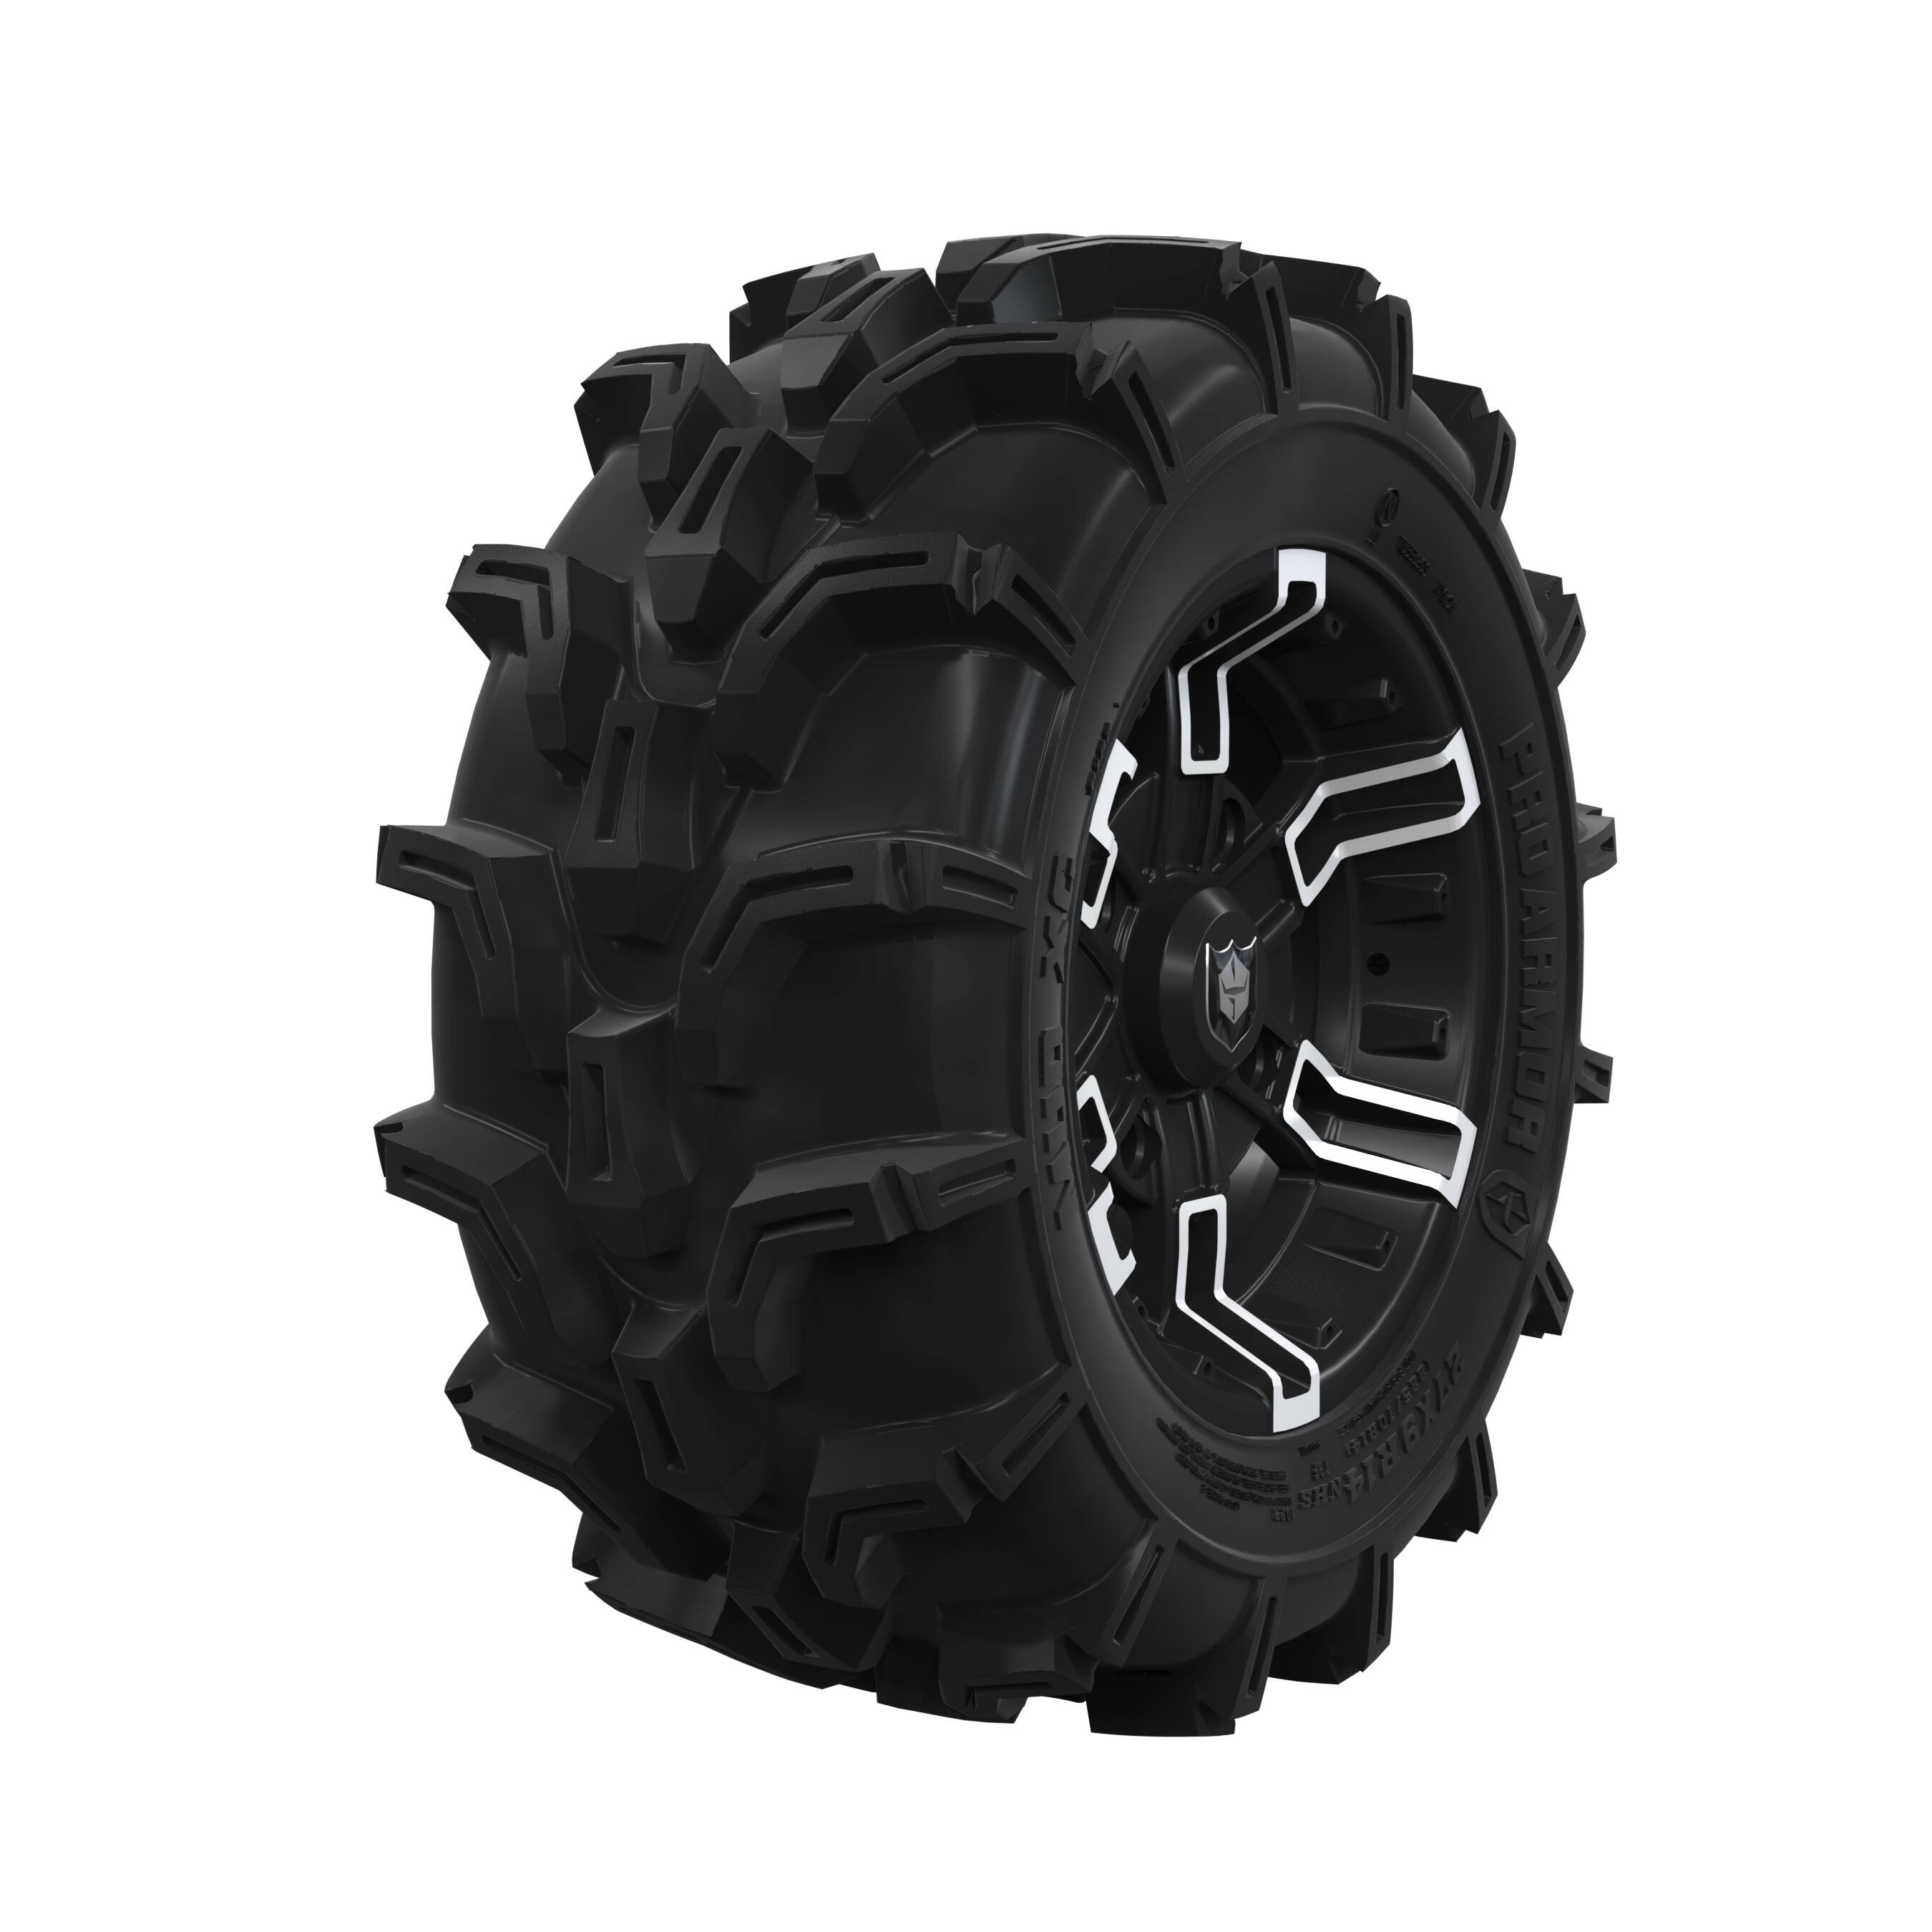 "Pro Amor® Wheel & Tire Set: Mud XC - Buckle - Accent - 27""R14"